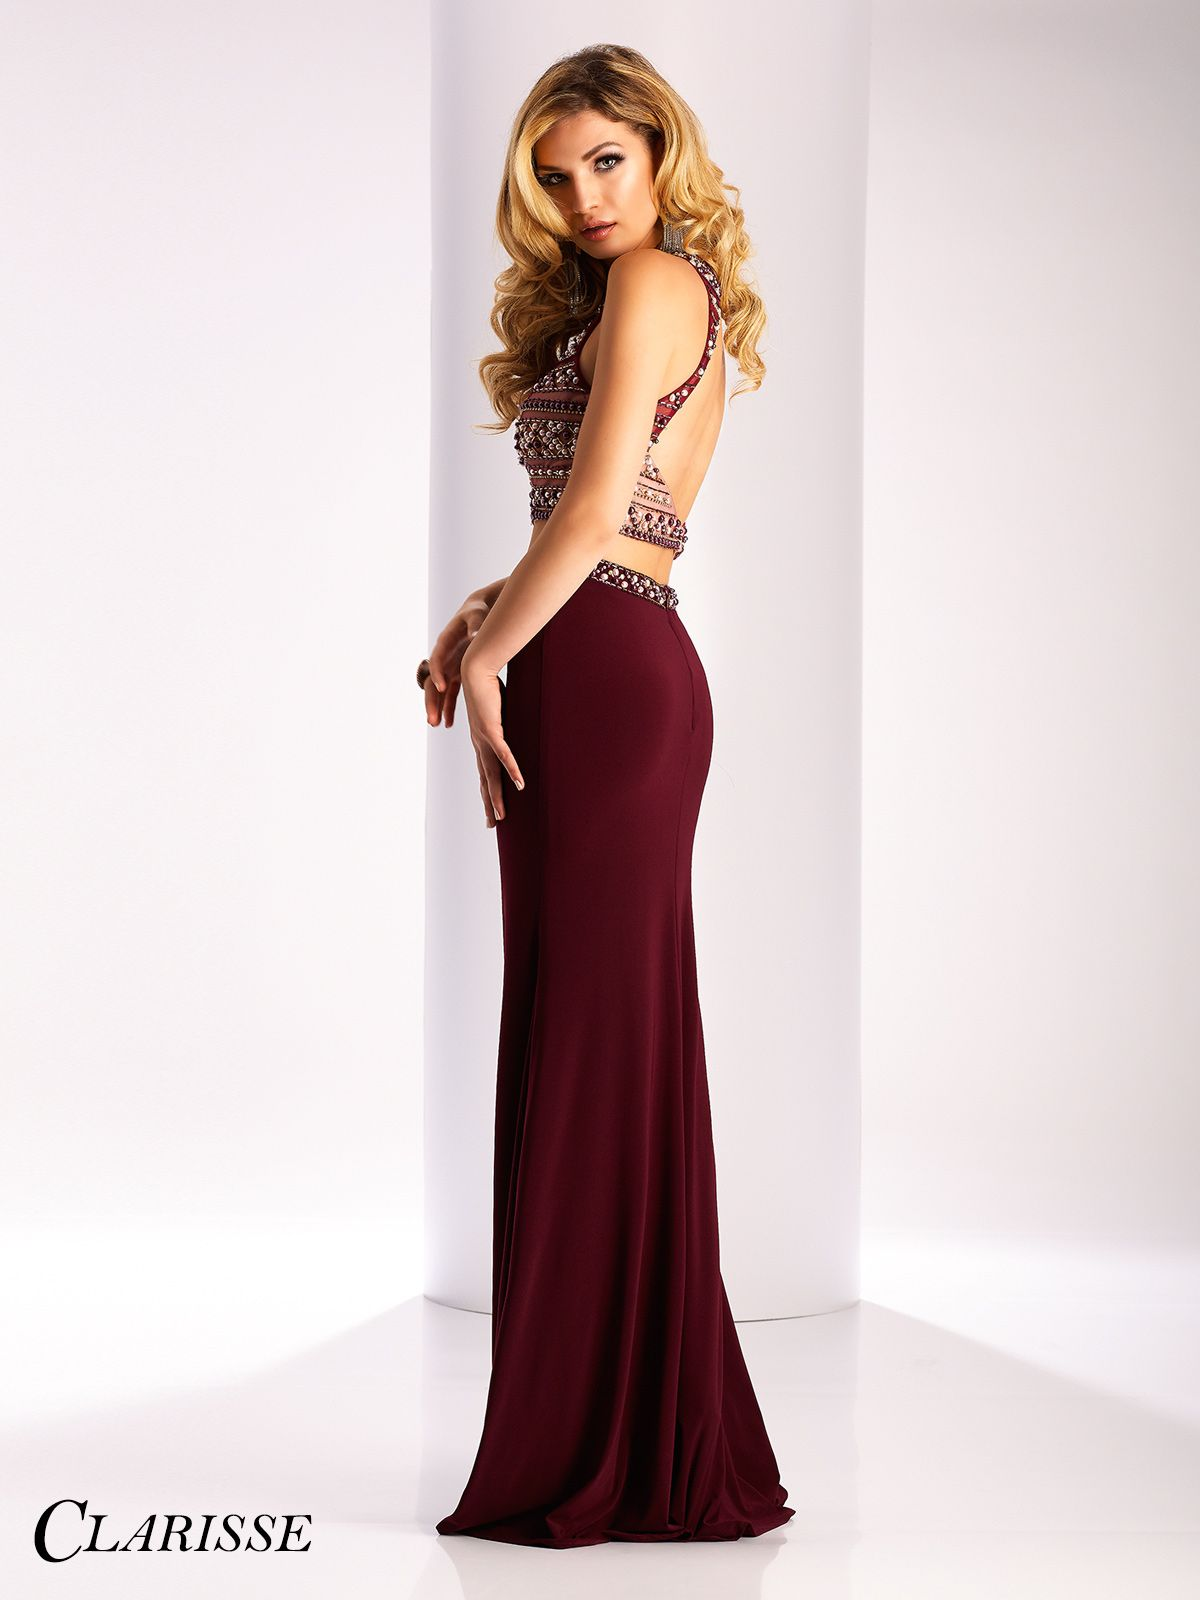 586bf0b0b629d Clarisse 2017 prom dress style 3020. Fitted two piece prom dress in  burgundy | Promgirl.net